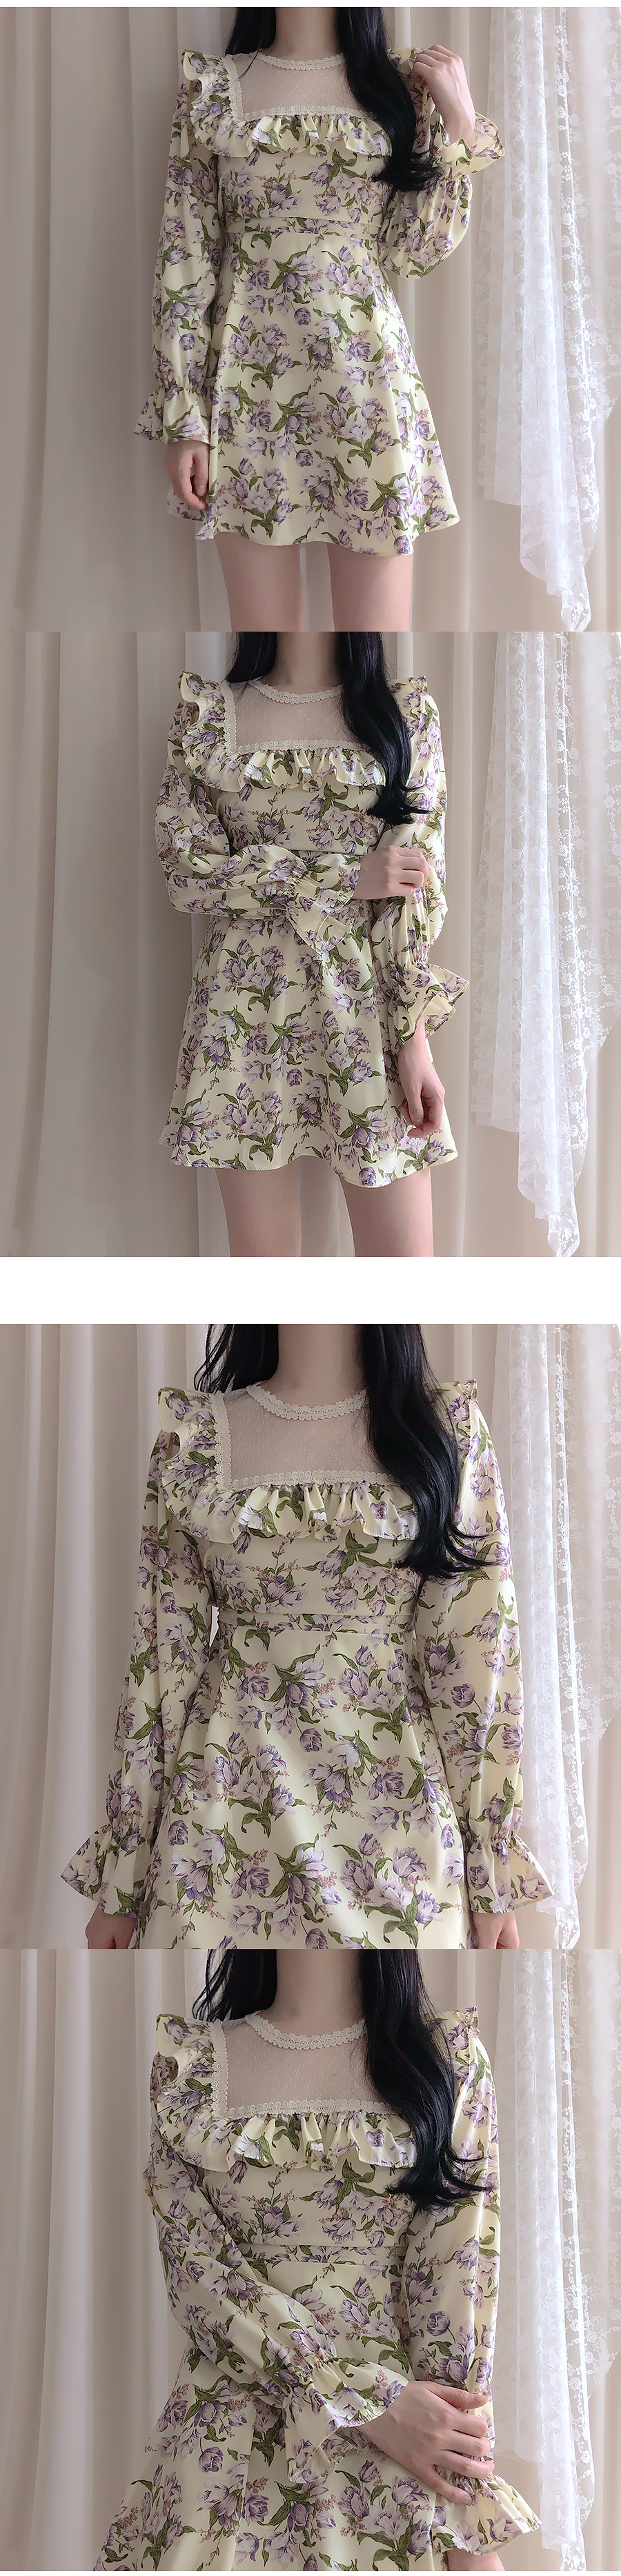 Miu floral lace dress